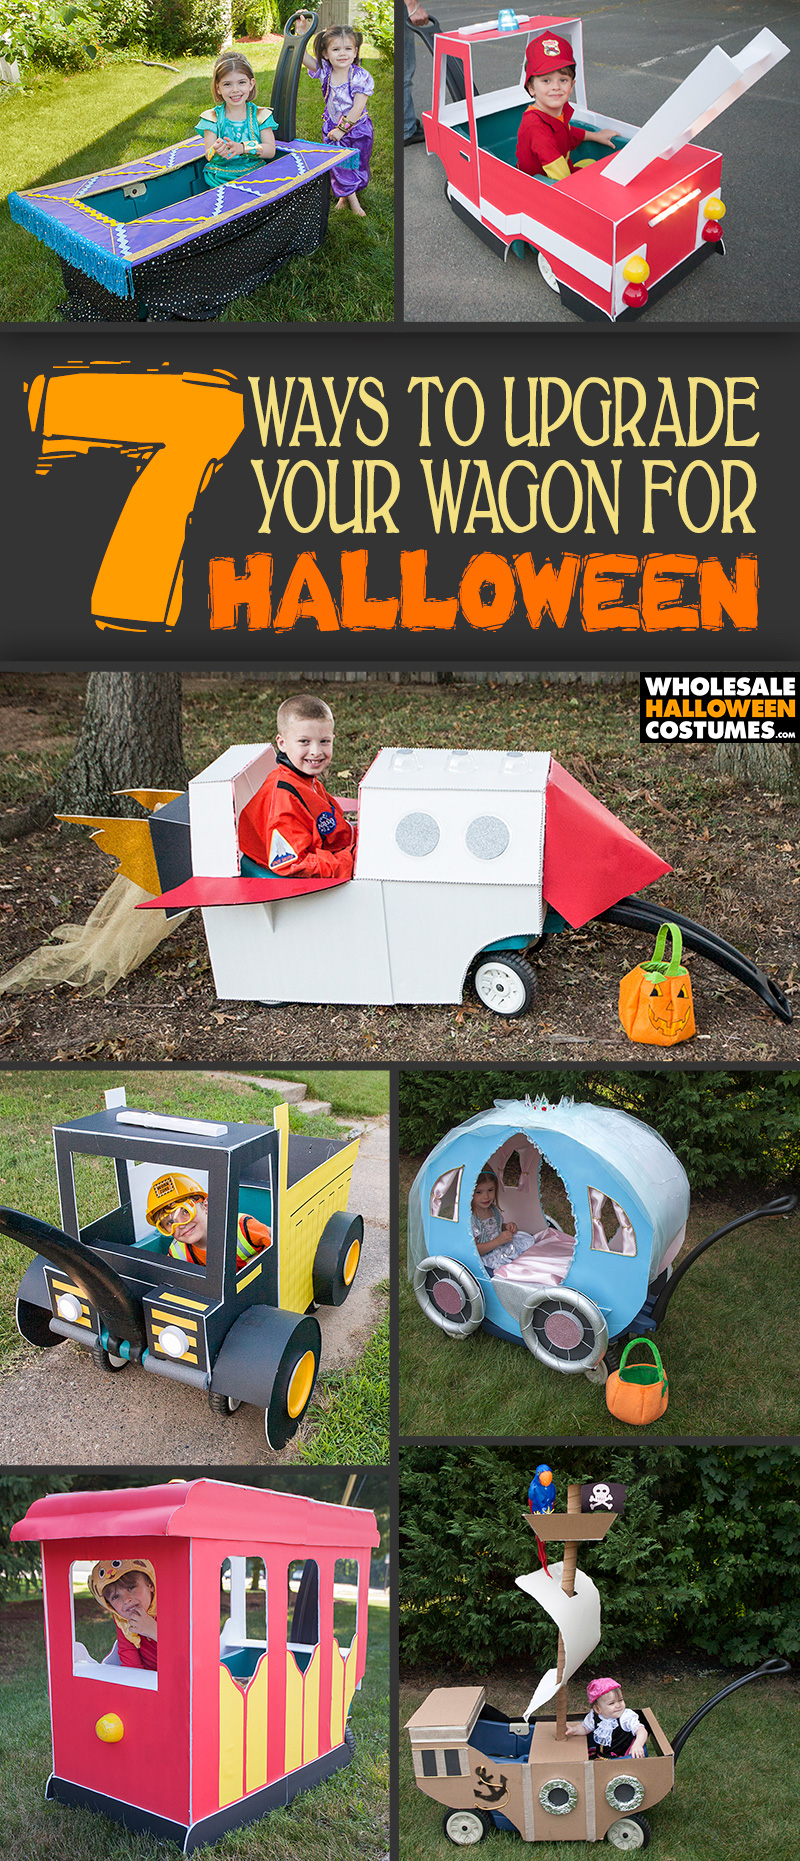 DIY Halloween Wagon Upgrades